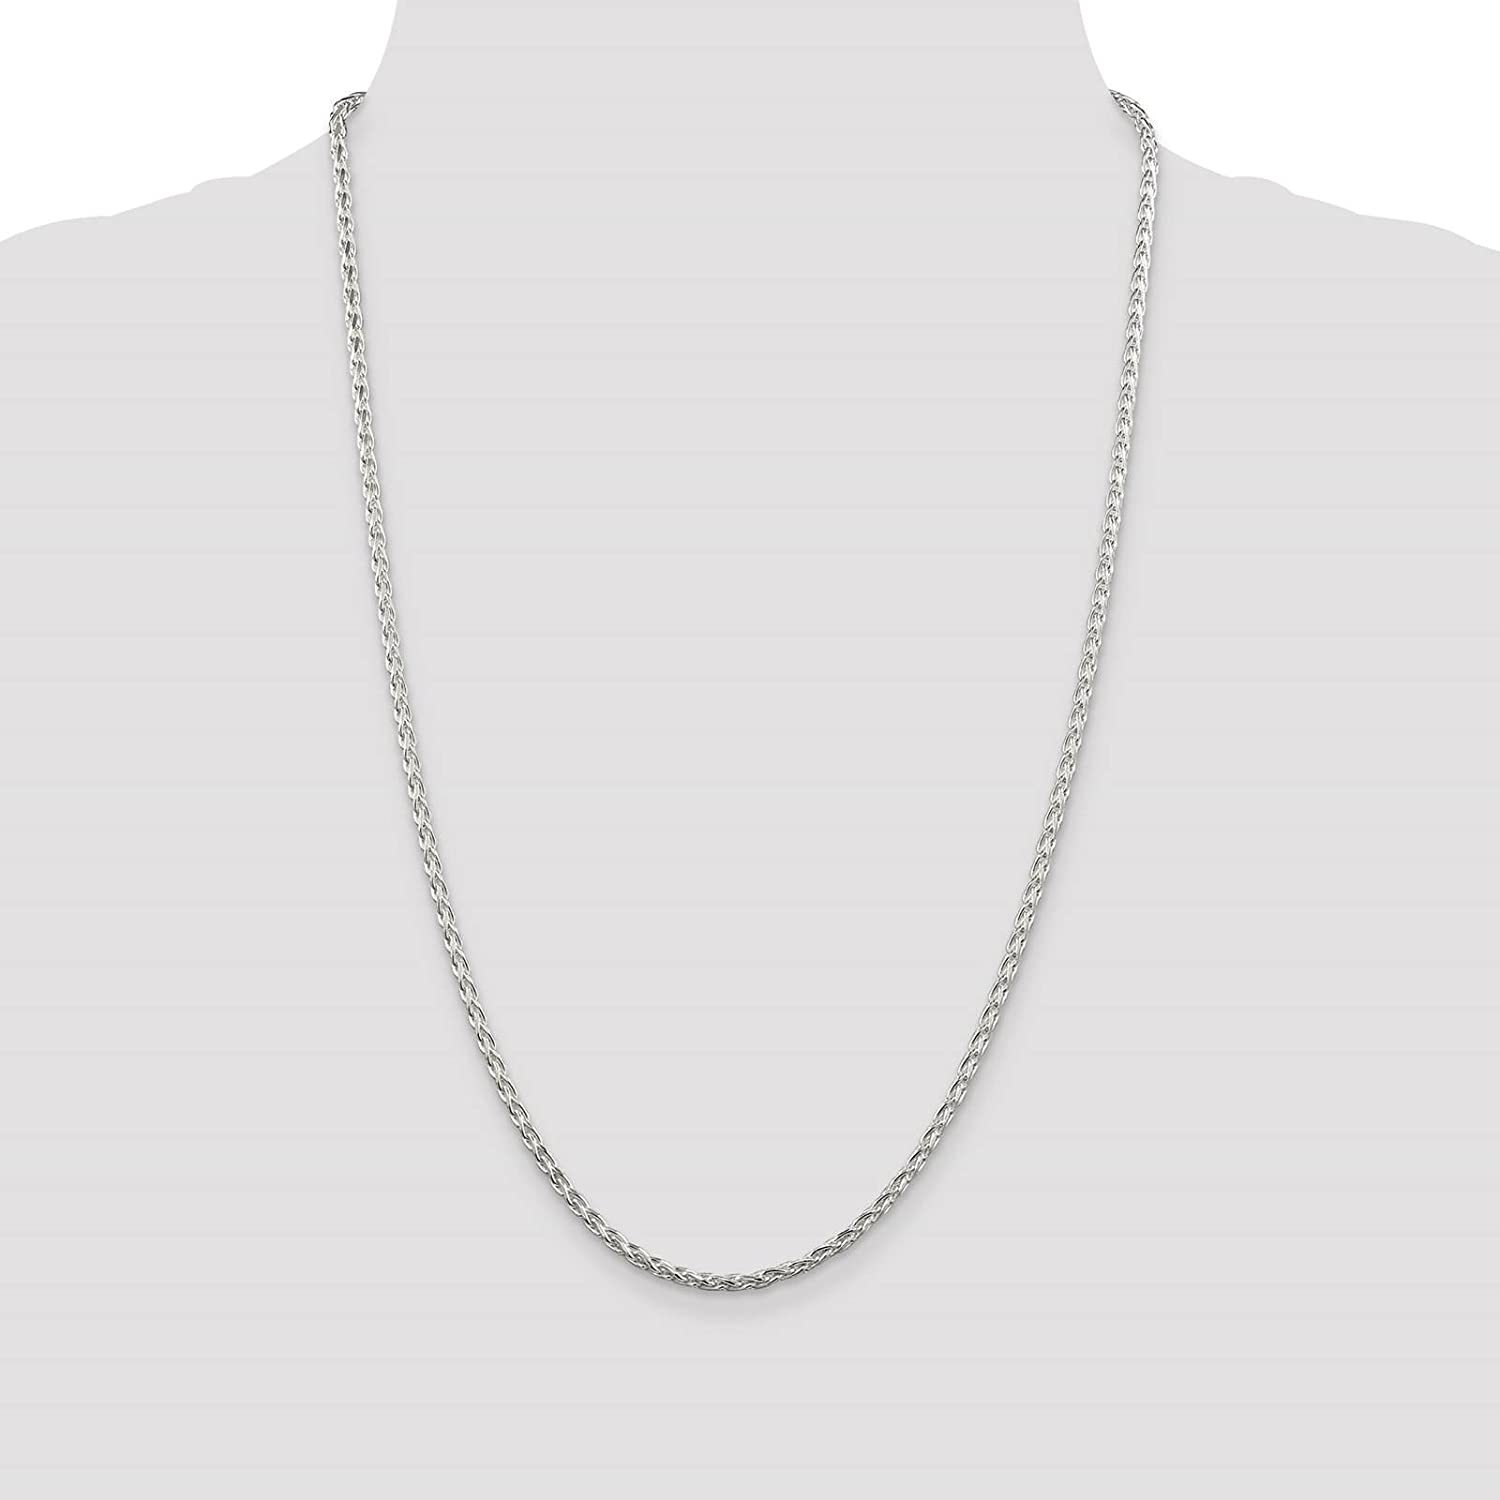 925 Sterling Silver 2.8mm Diamond-cut Round Spiga Chain Necklace 18-24